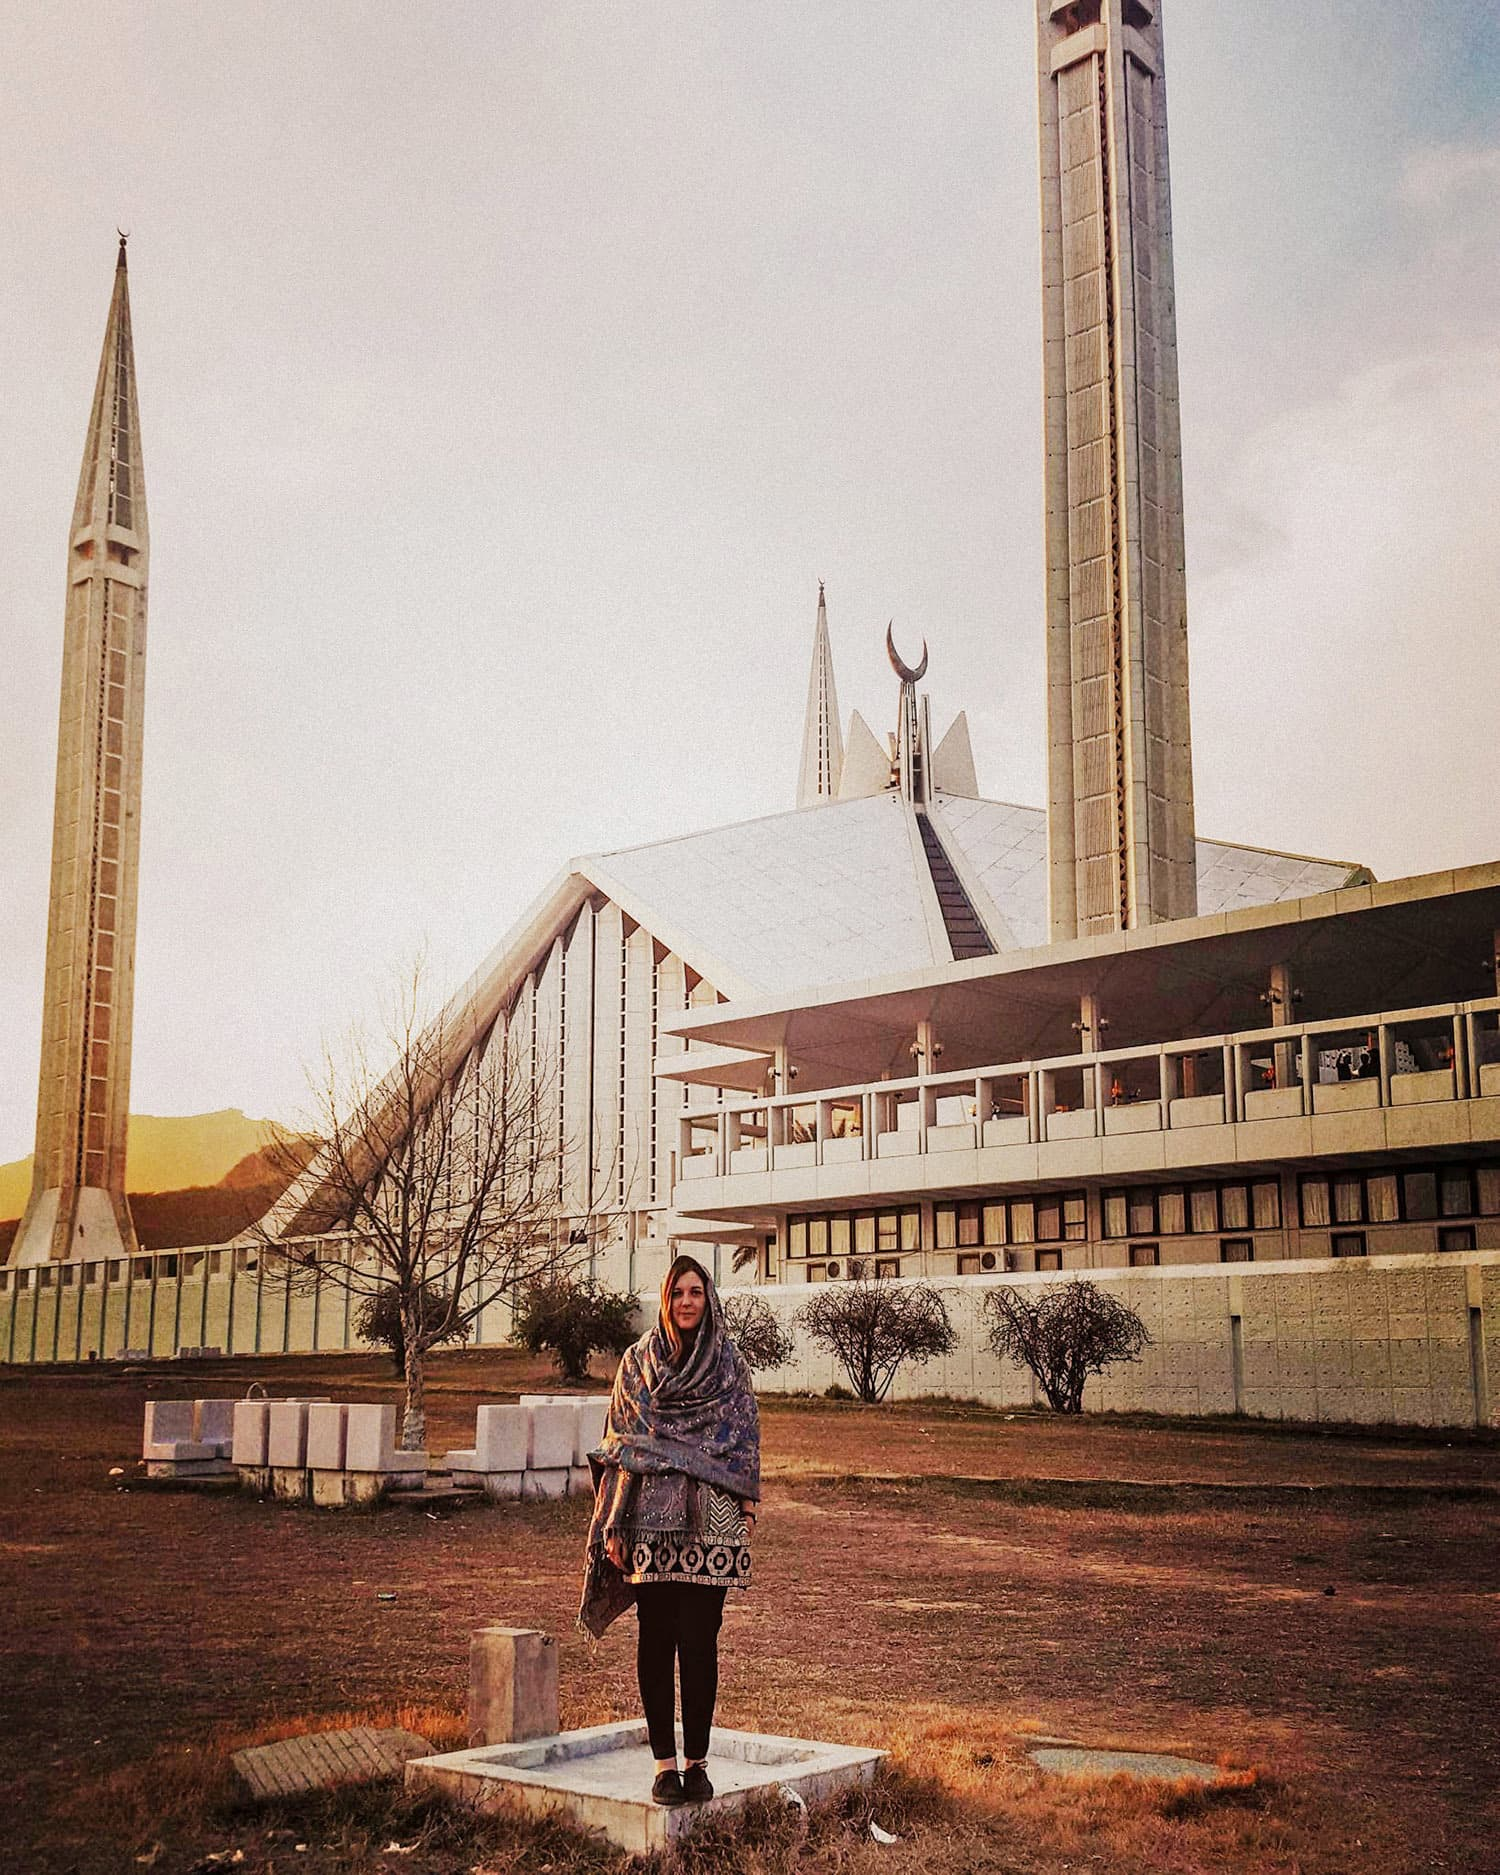 Faisal mosque is completely different than the other two mosques I visited.